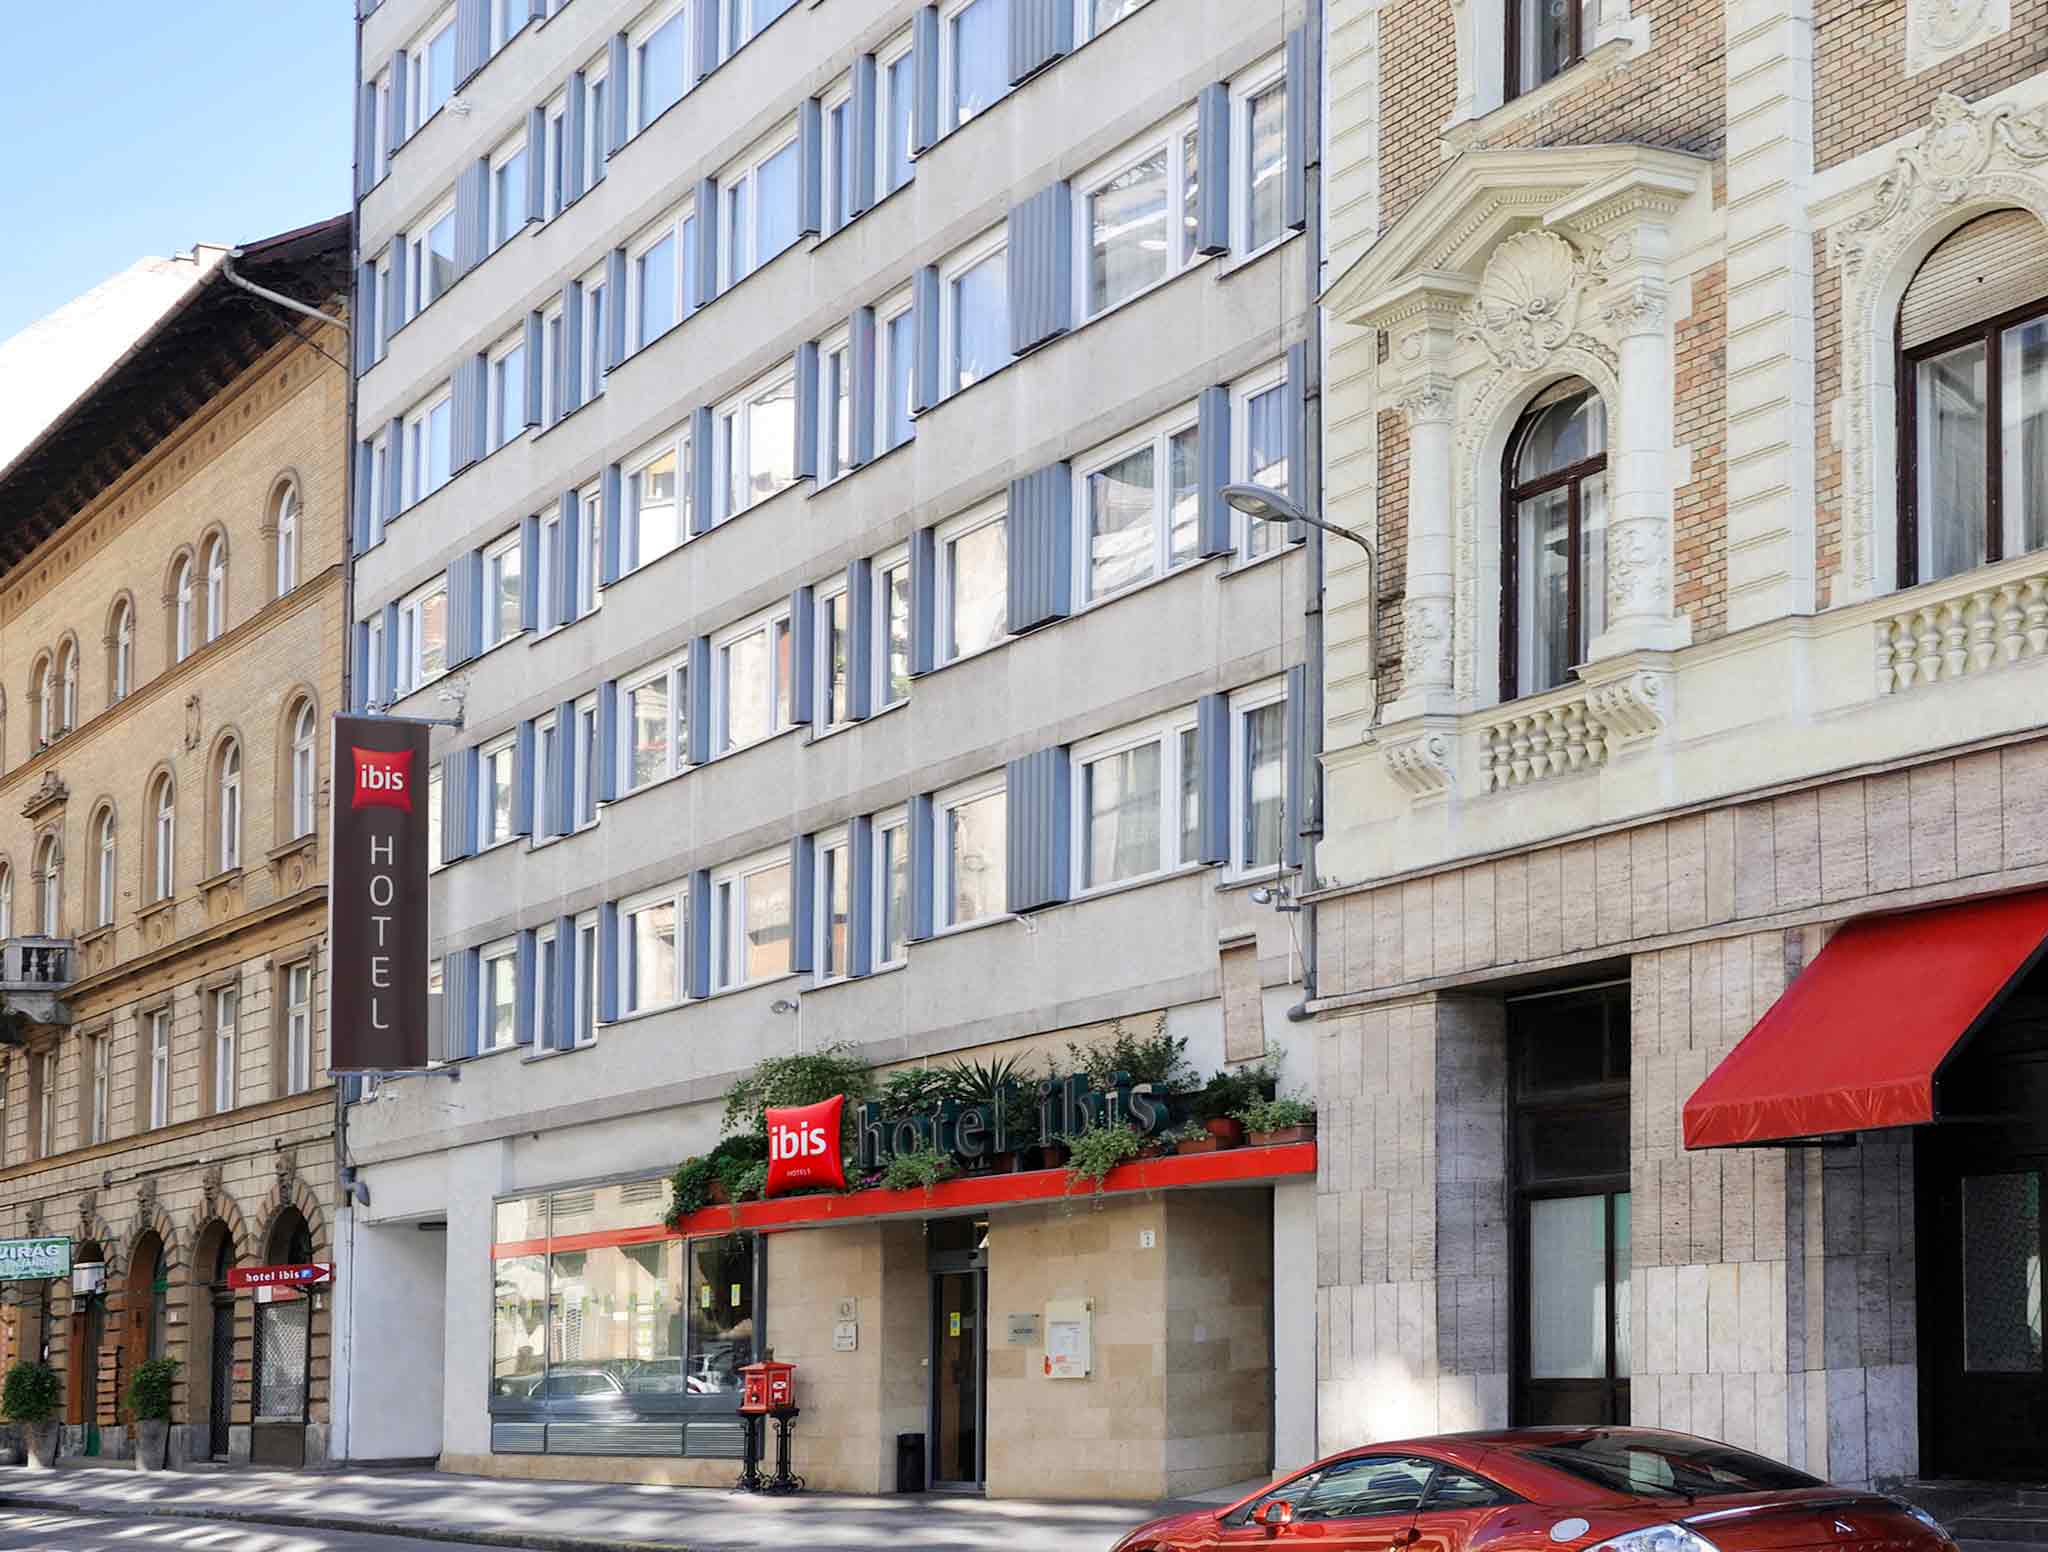 Ibis budapest city comfortable modern hotel in budapest for Hotel budapest